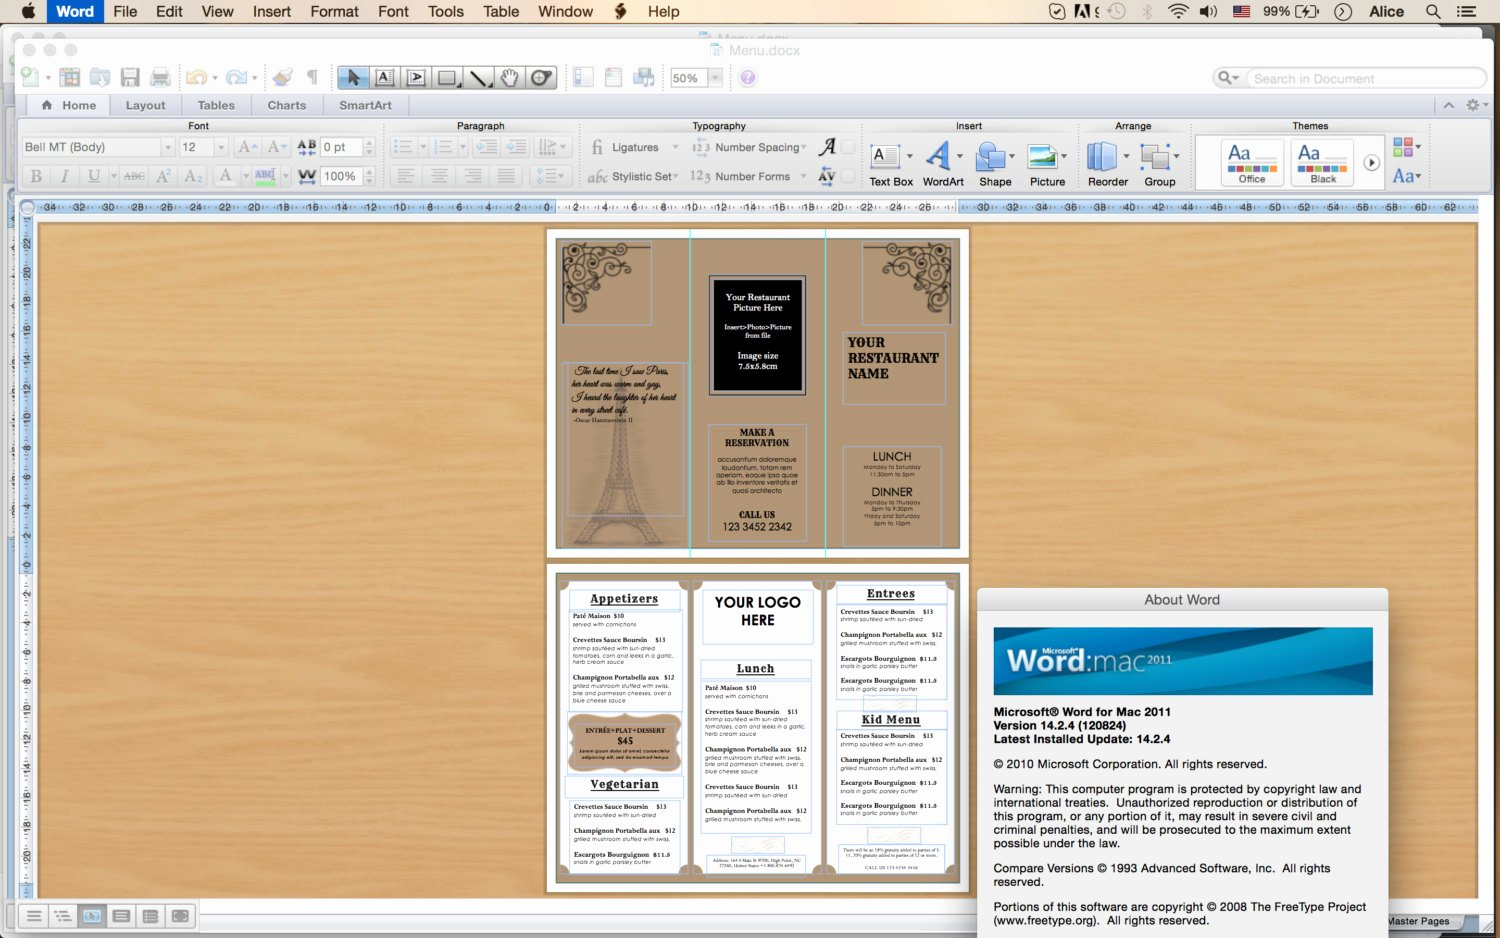 Take Out Menu Template Awesome Design & Templates Tri Fold Take Out Menu Menu Templates